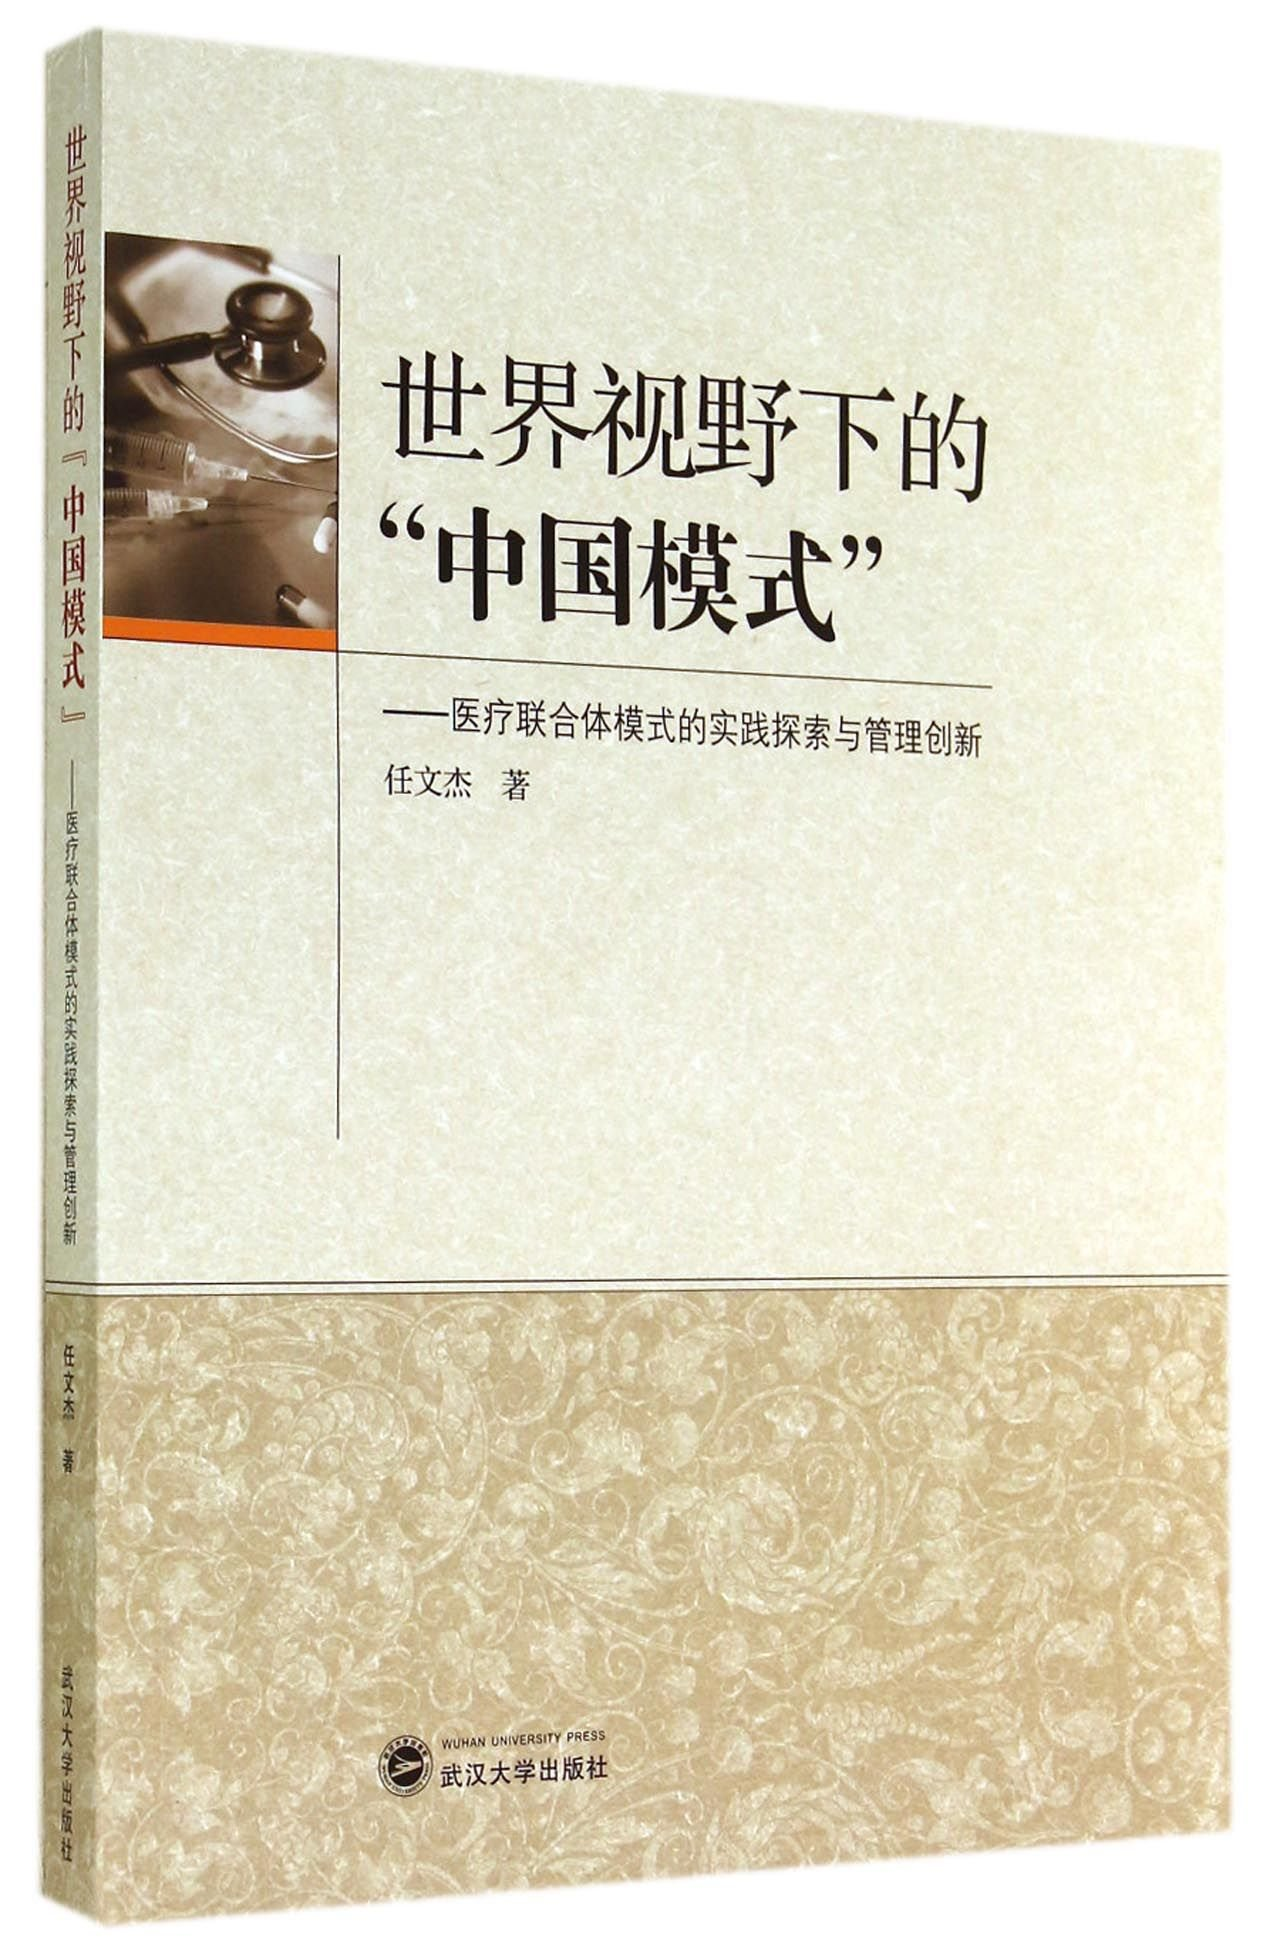 Chinese Model of World View - Medical Practice and Management Innovation Consortium Model(Chinese Edition) pdf epub